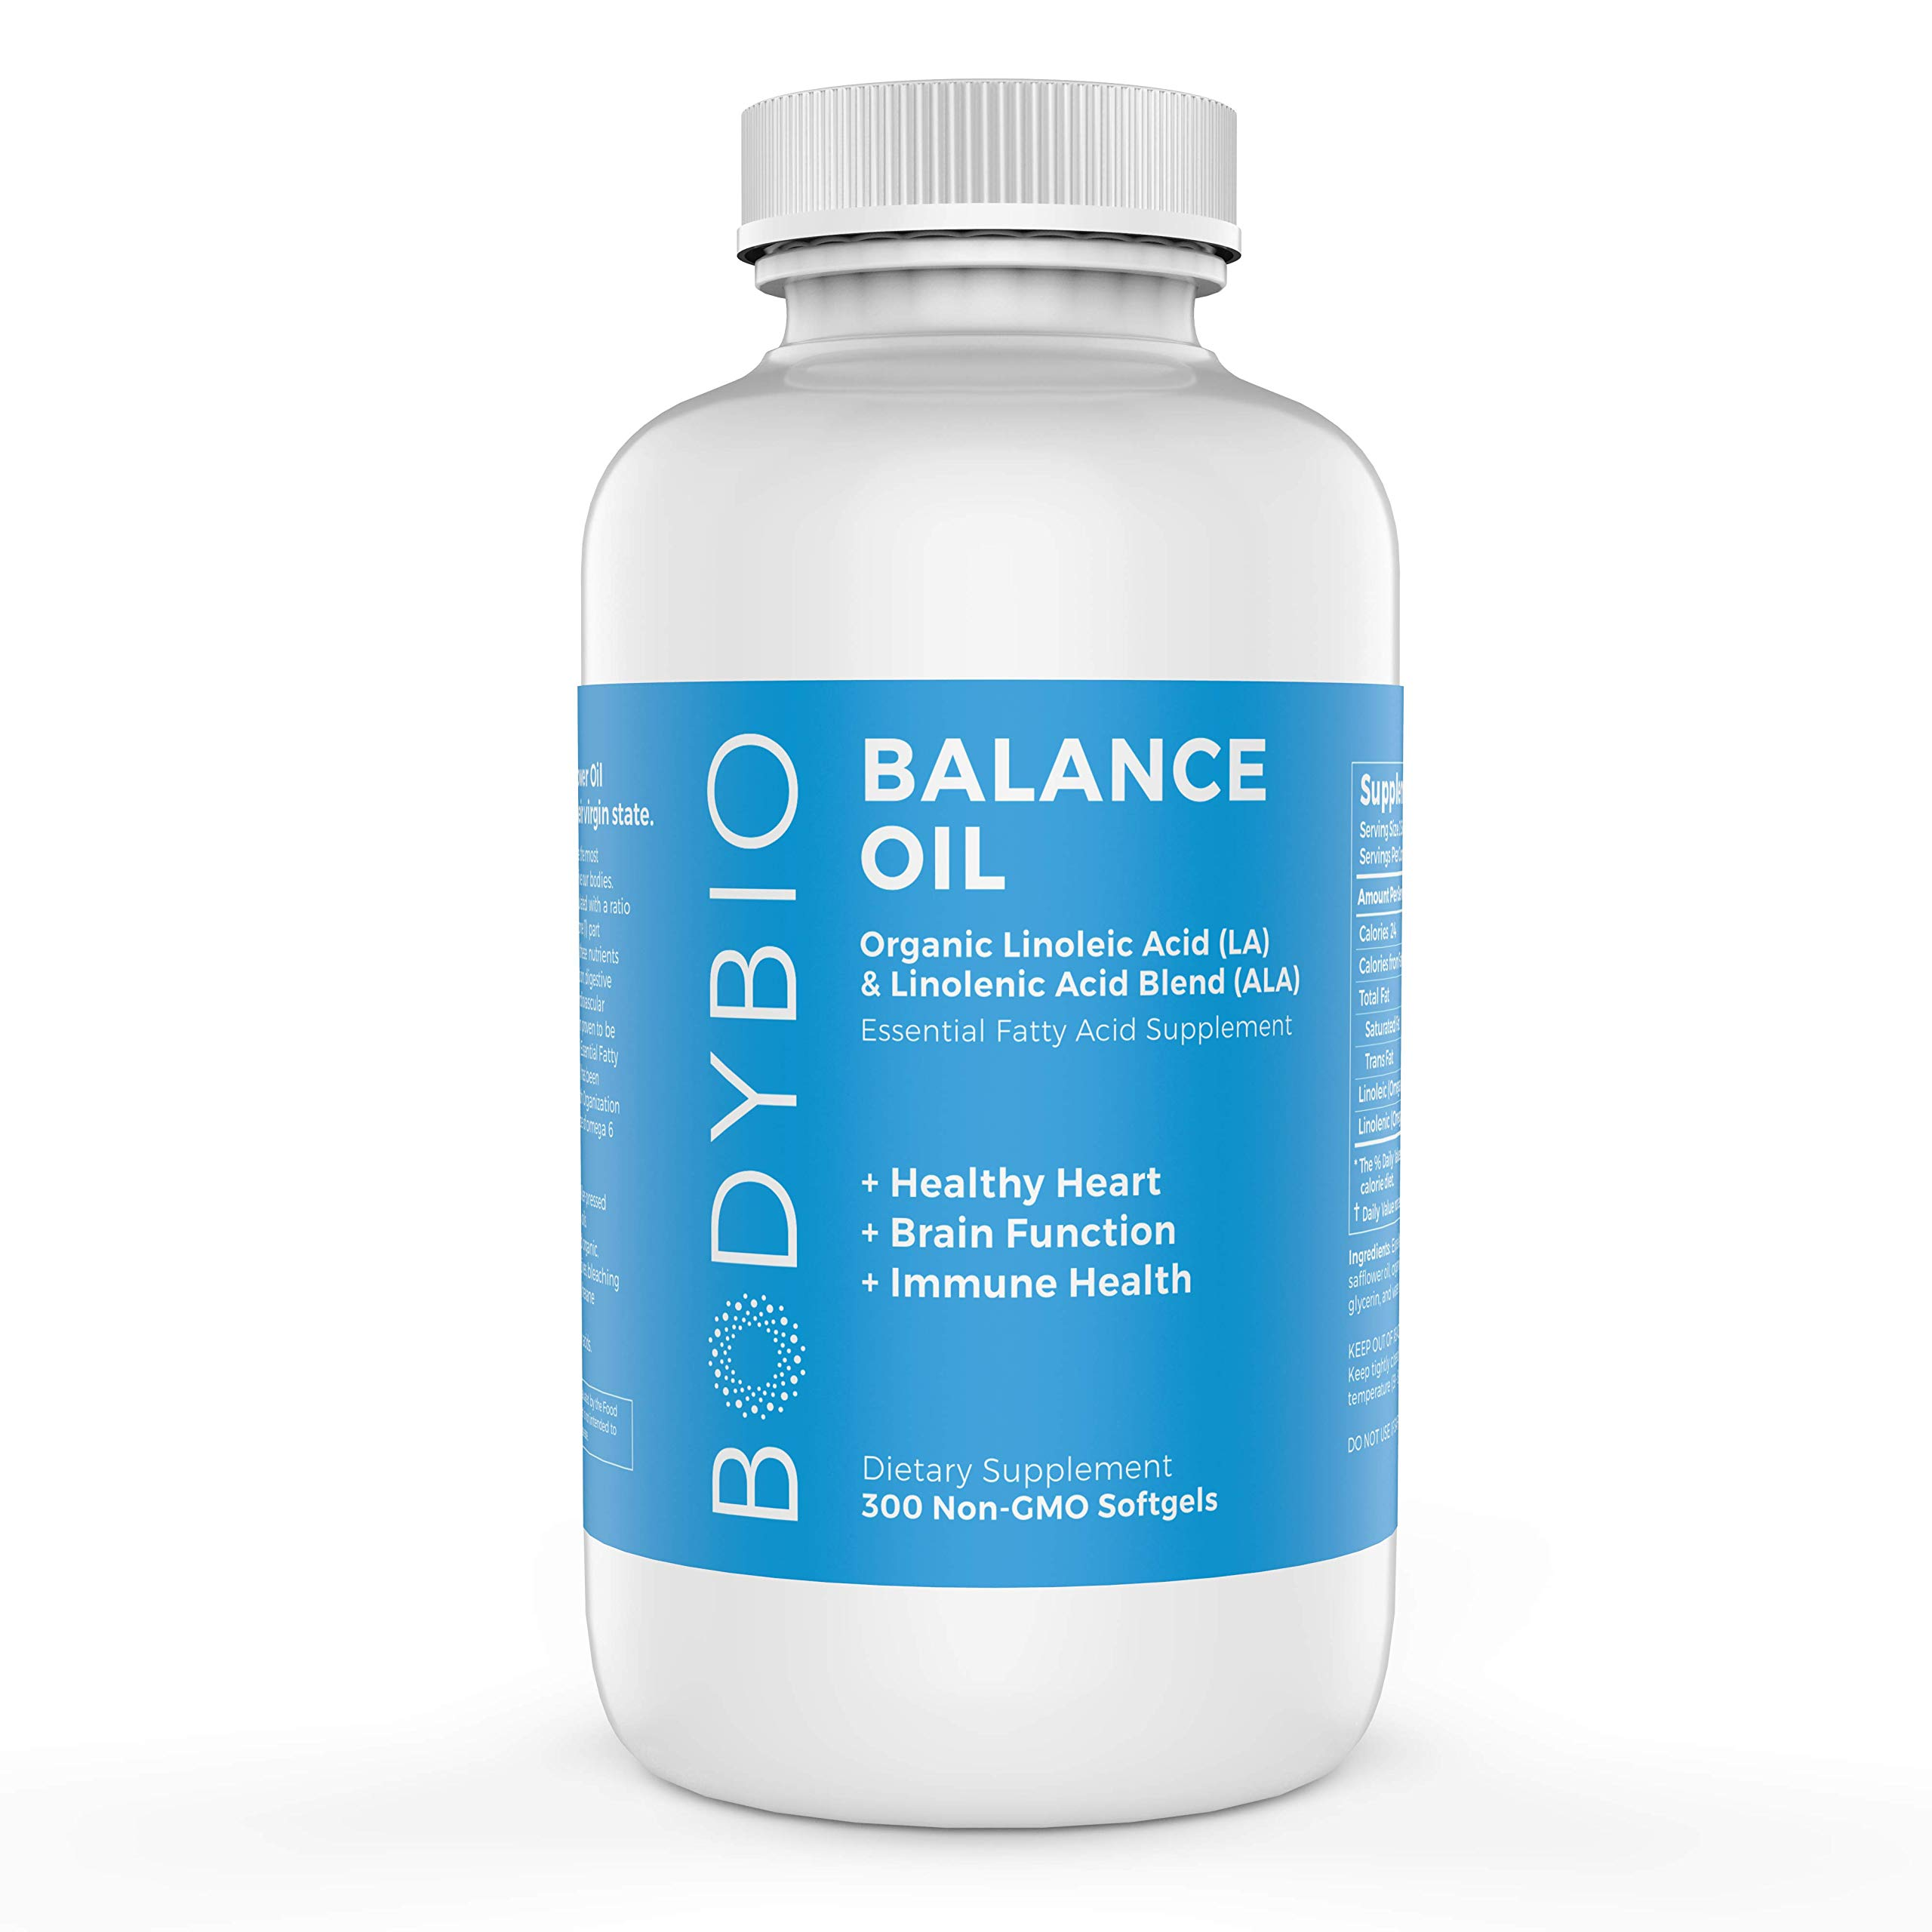 BodyBio - Balance Oil, Essential Fatty Acids, Organic Safflower and Flax Seed Oil Blend, 4:1 LA to ALA, 300 Softgels by BodyBio